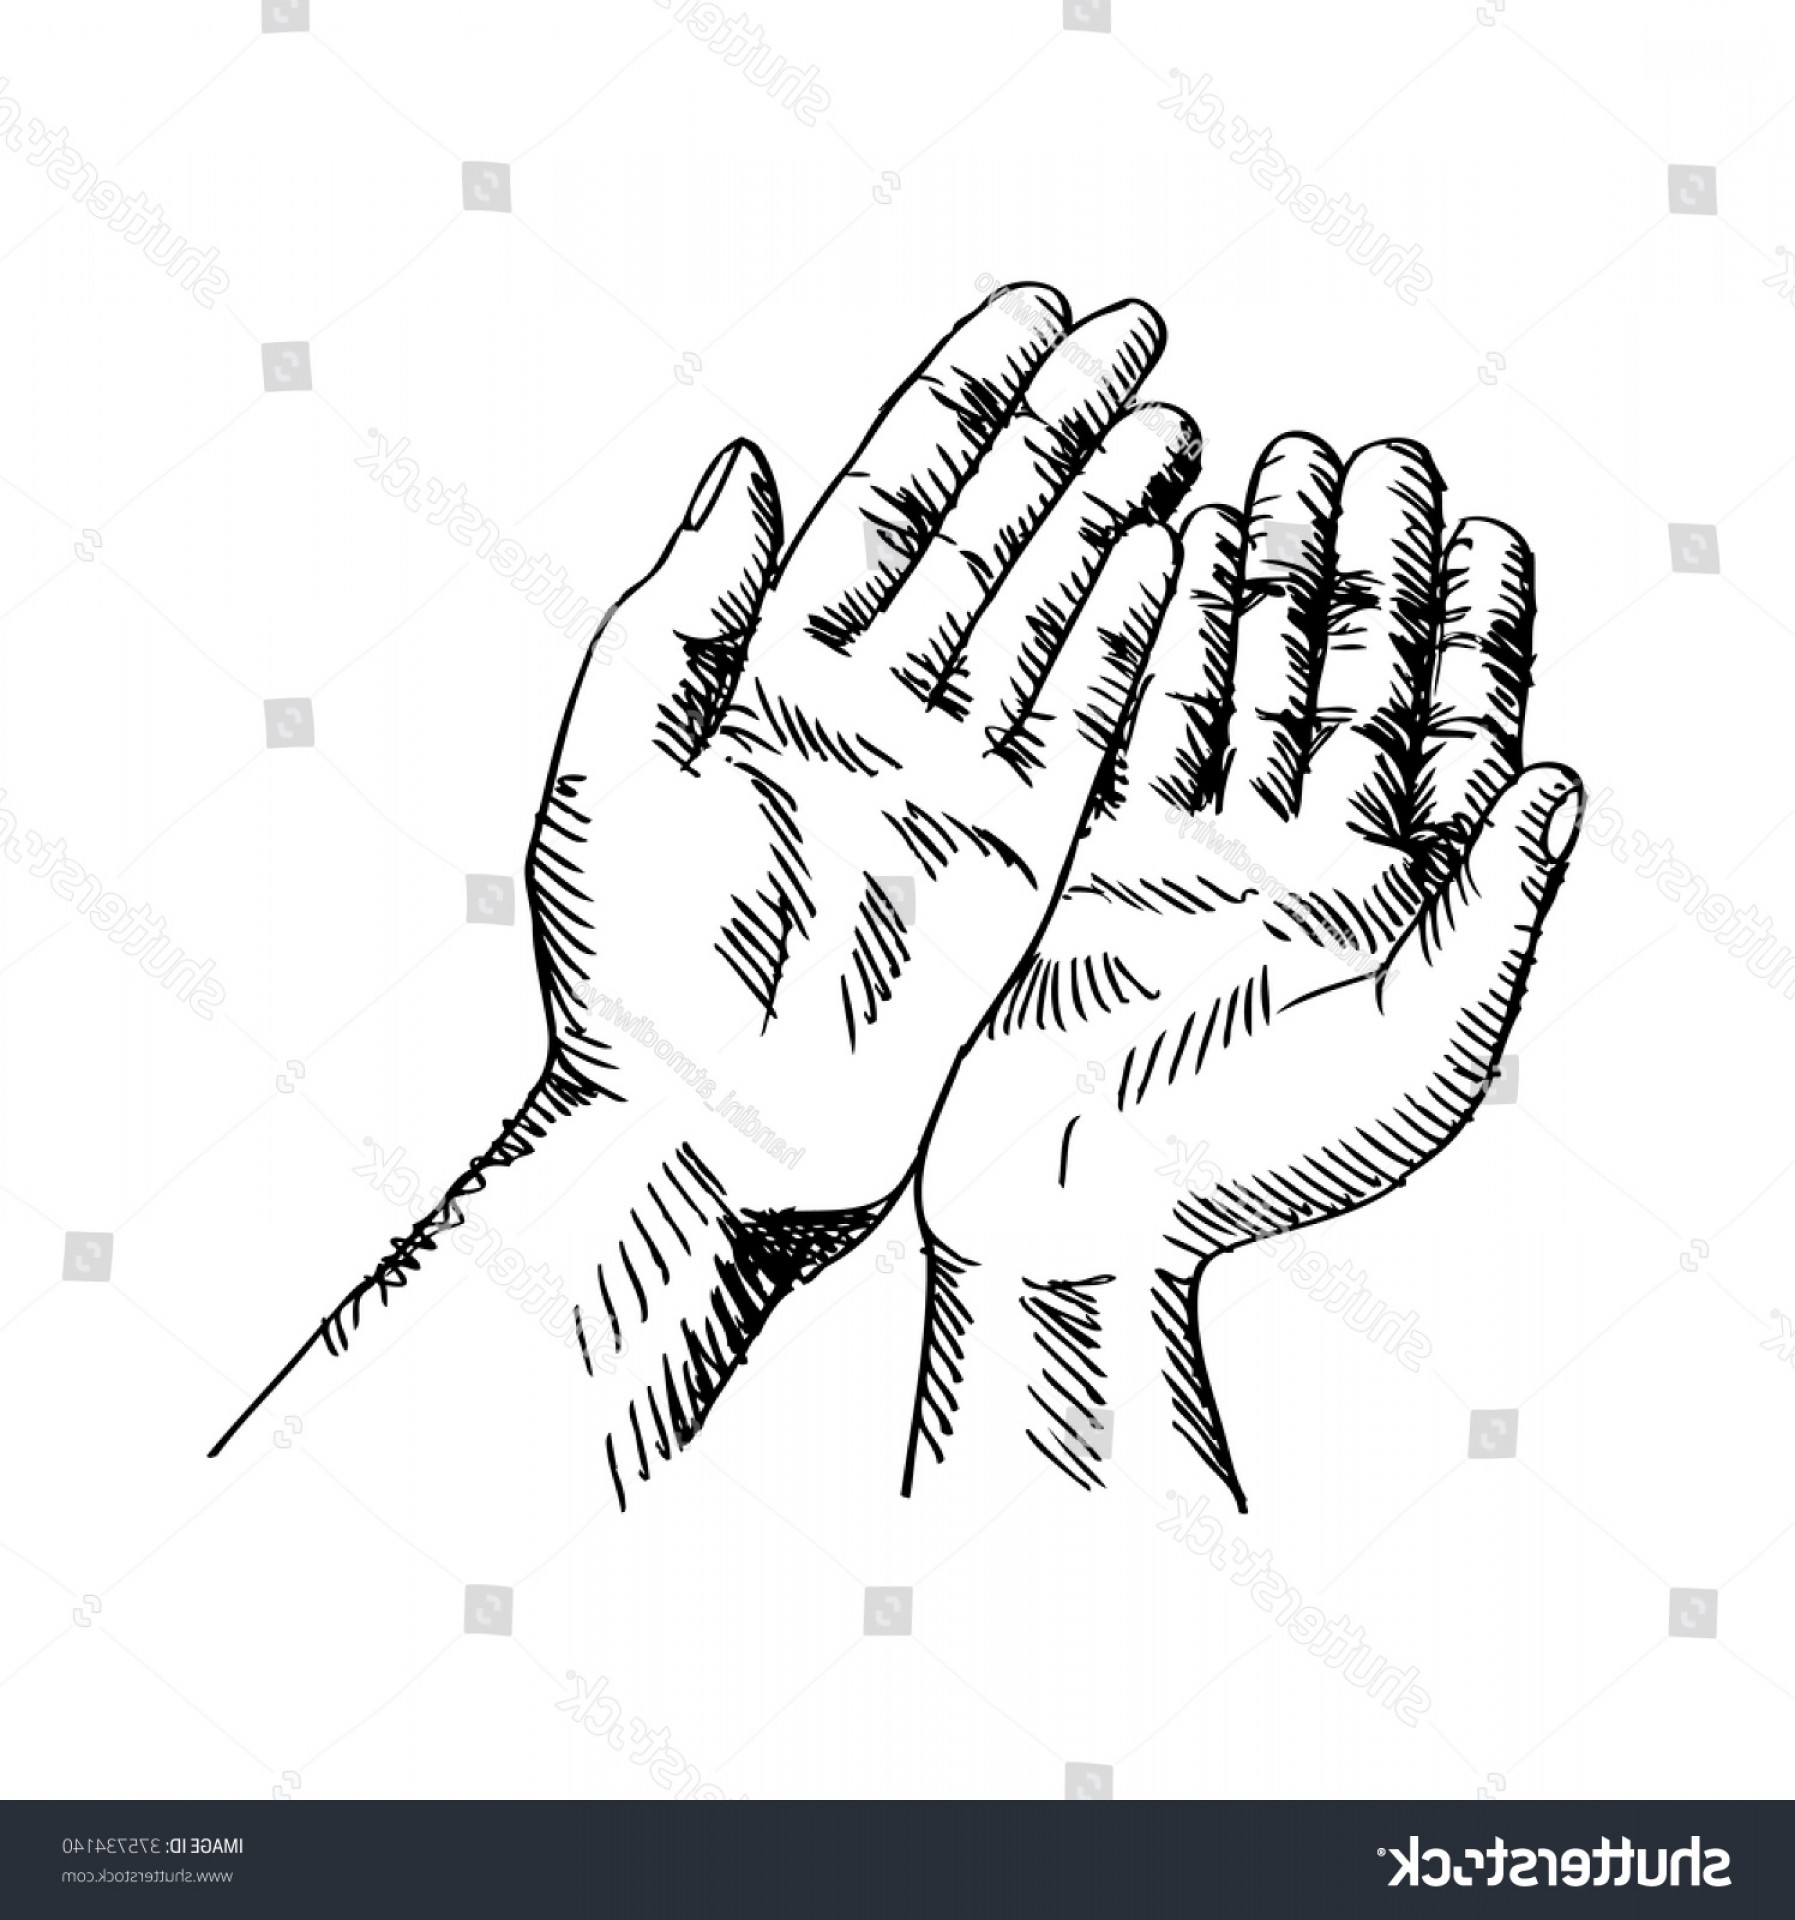 Praying Hands Vectors Shutterstock: Sketchy Illustration Praying Hands Vector